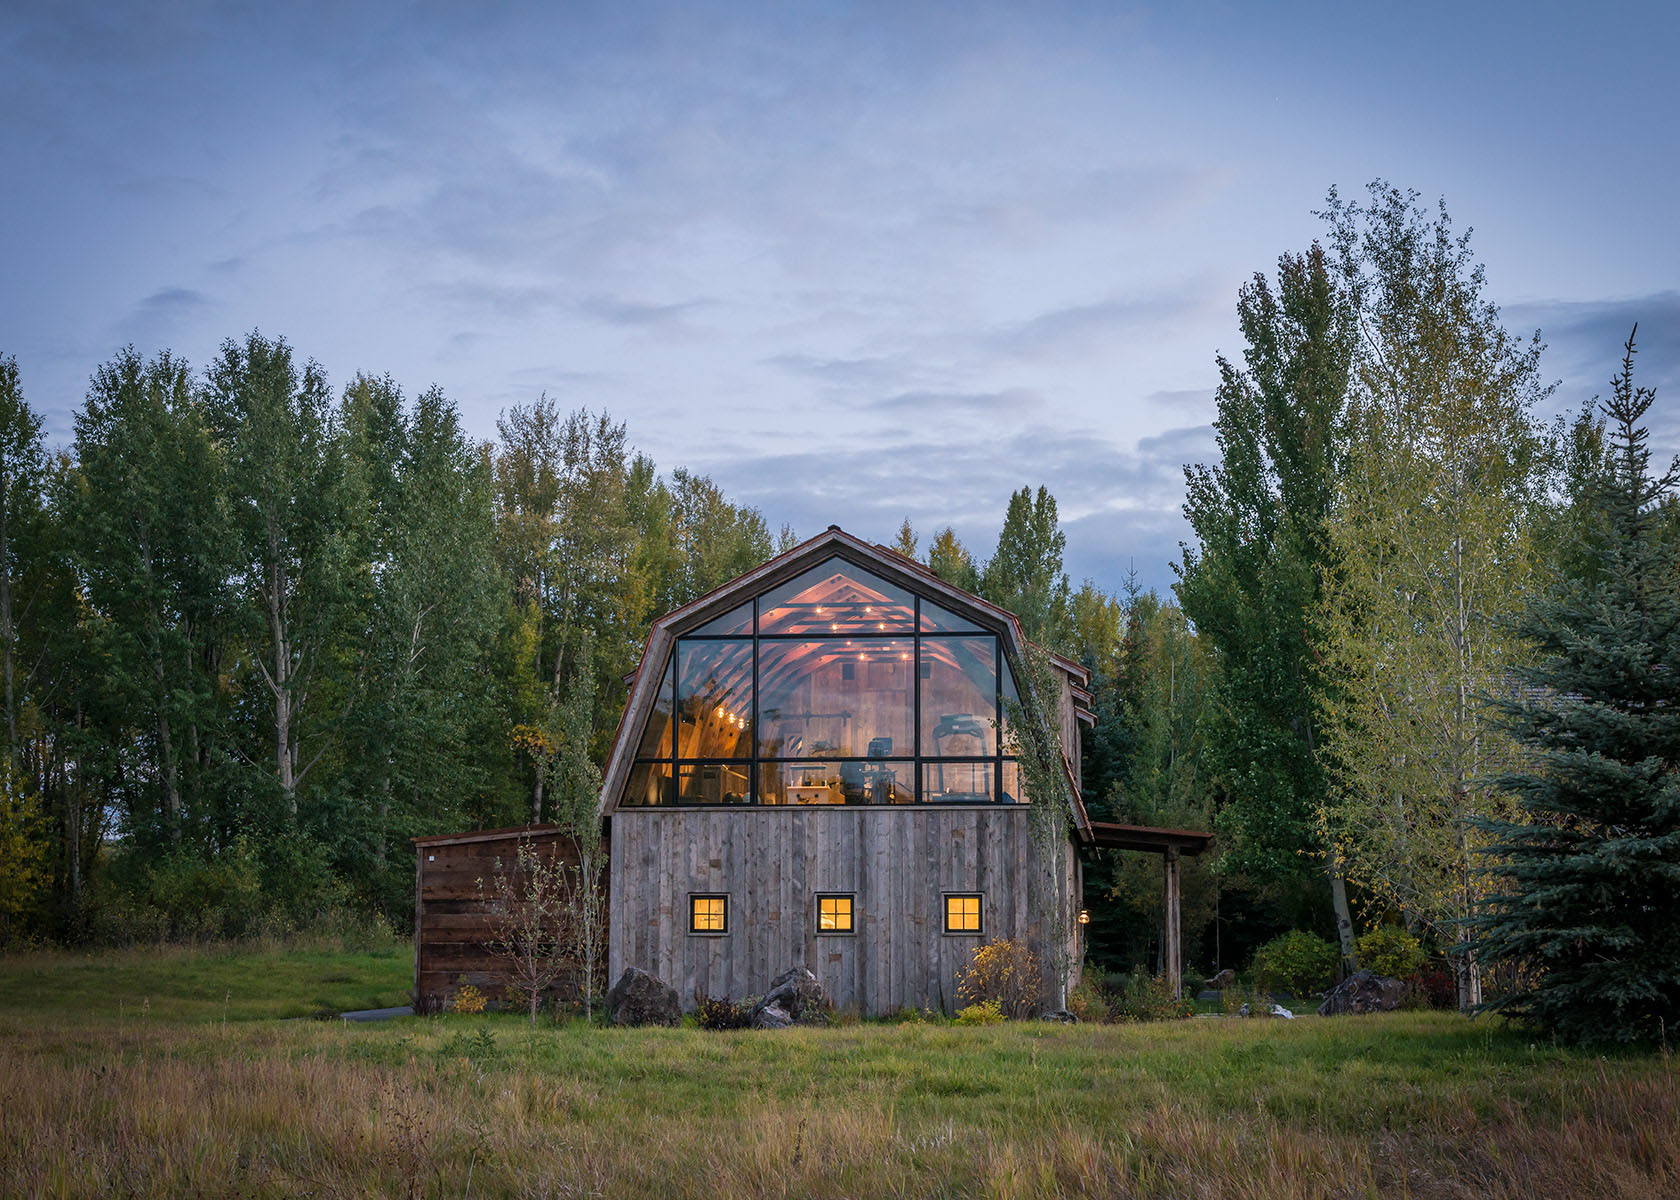 Barn House Interior Rustic Wooden Barn House In Wyoming With Modern Interior Elements